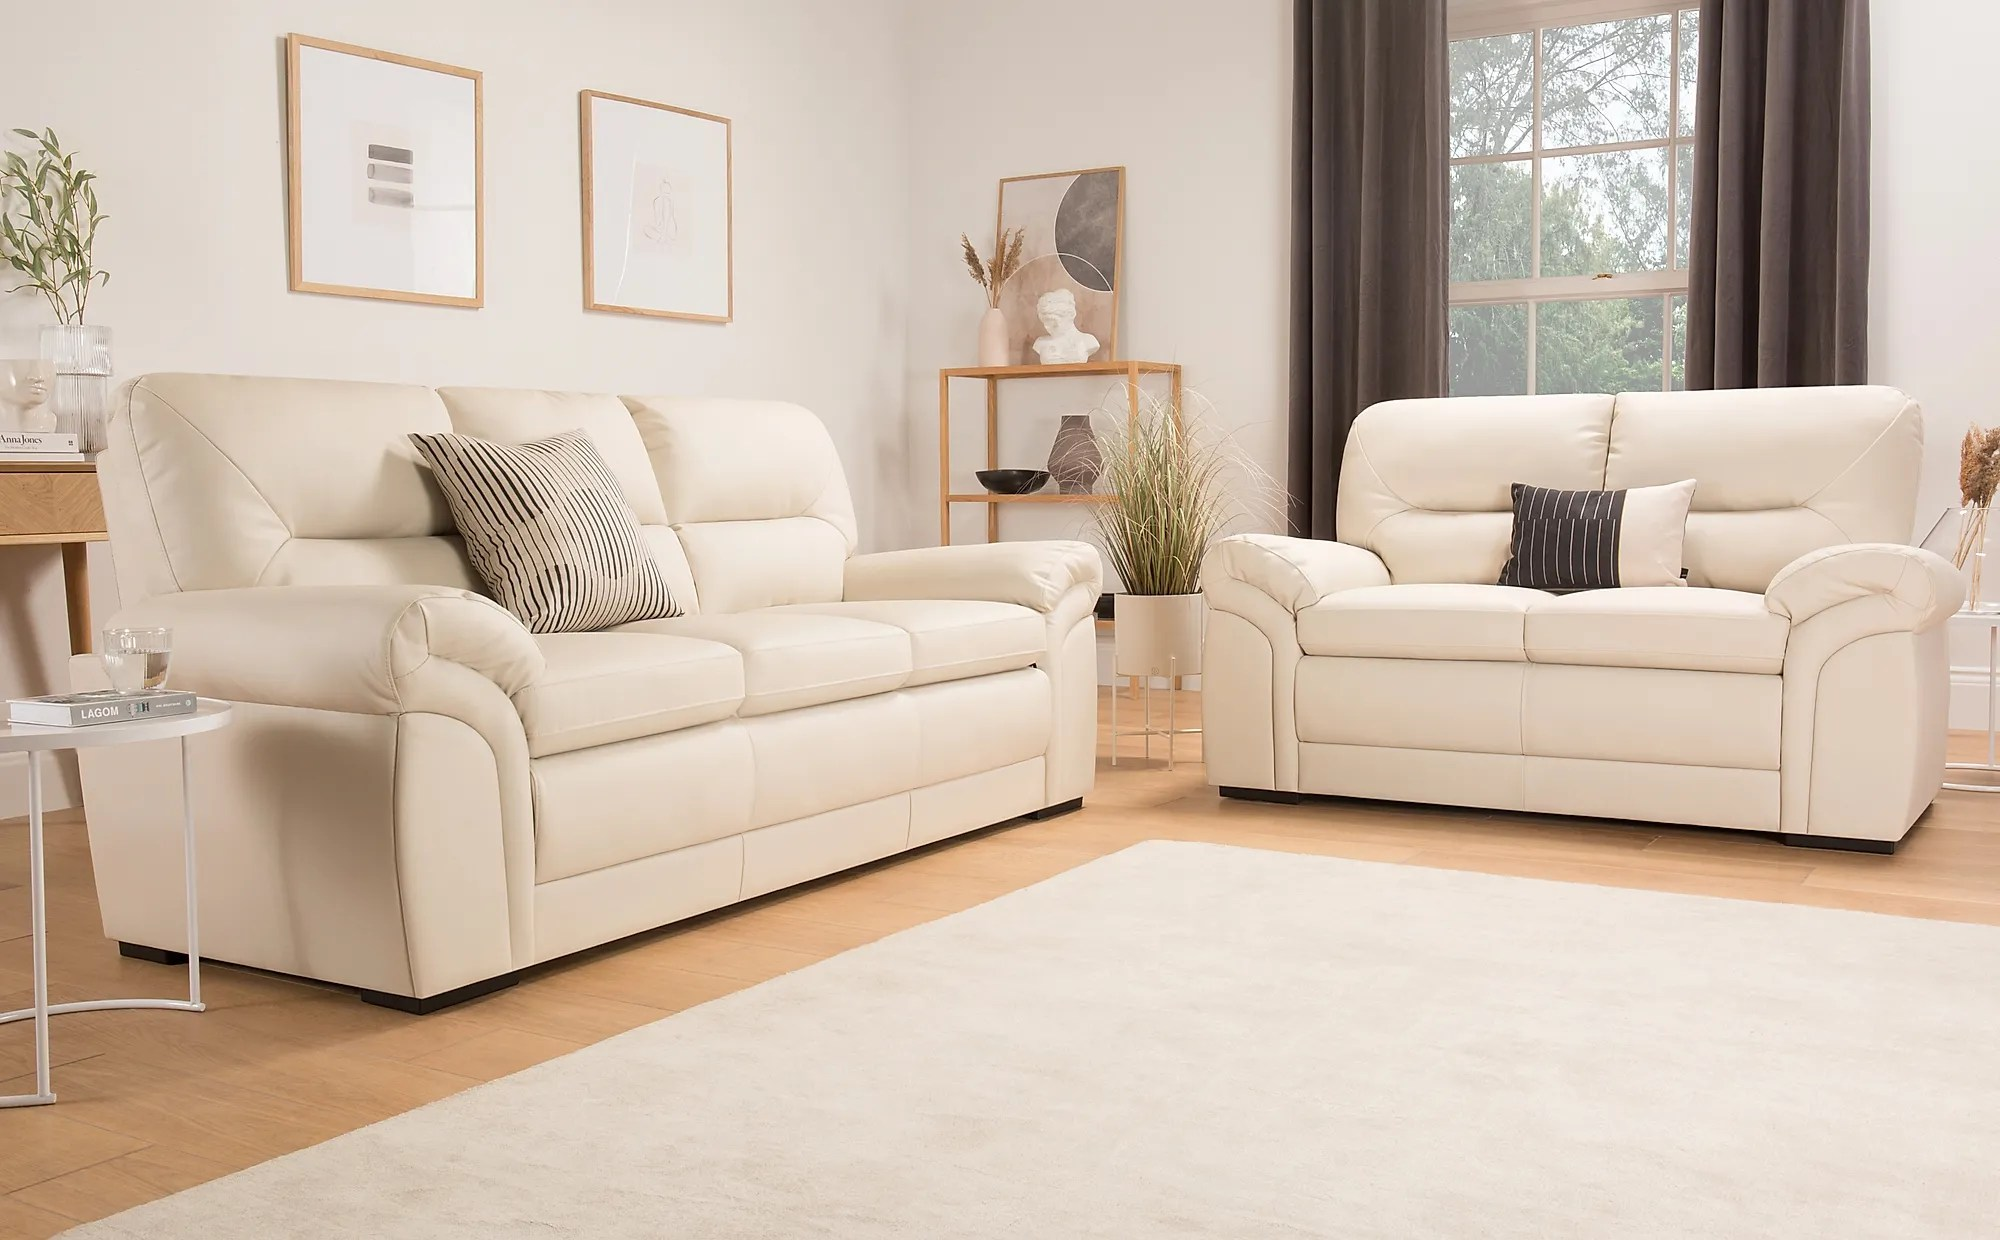 Bromley Ivory Leather Sofa 3+2 Seater Only £799.98